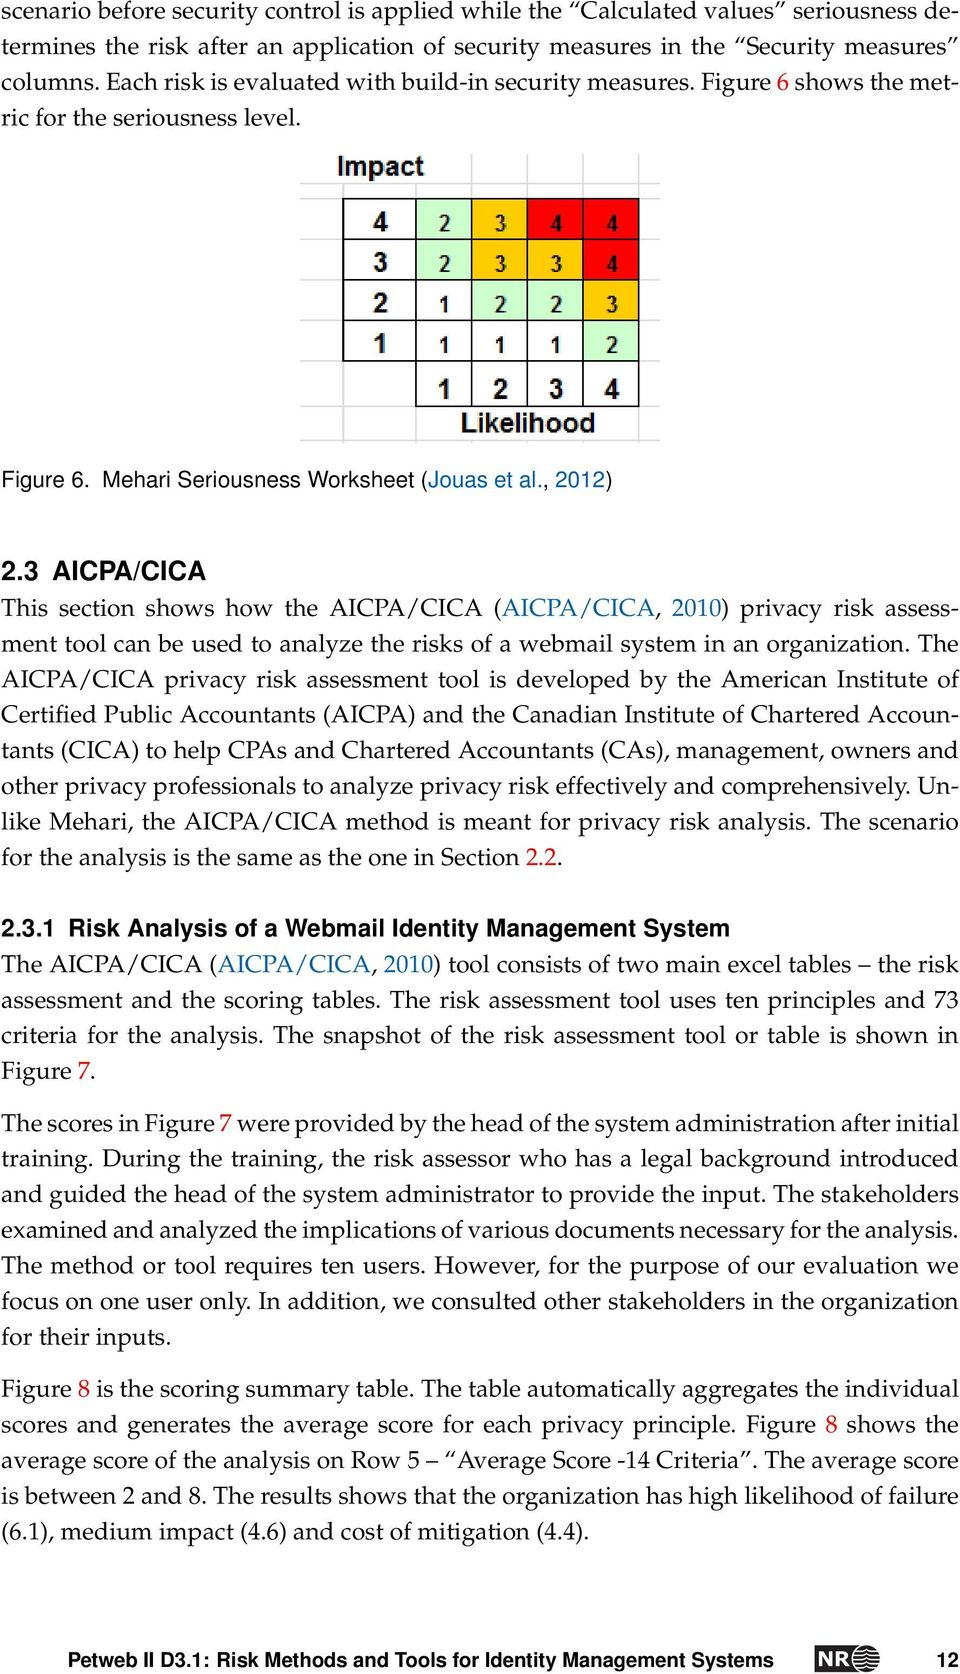 3 AICPA/CICA This section shows how the AICPA/CICA (AICPA/CICA, 2010) privacy risk assessment tool can be used to analyze the risks of a webmail system in an organization.